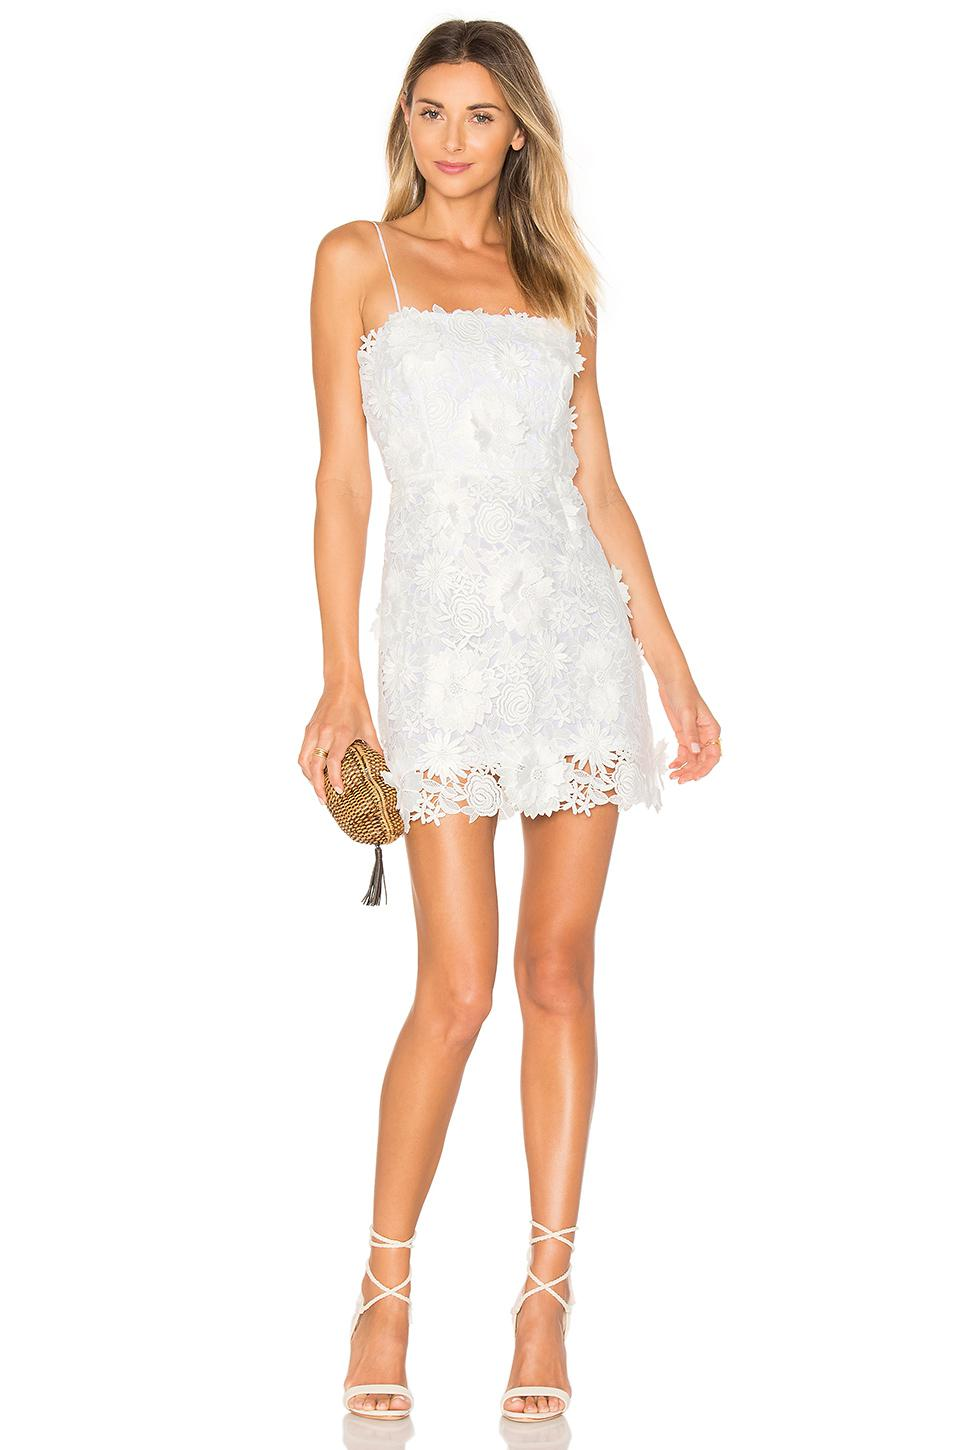 Lyst - Milly Embroidered Dress in White